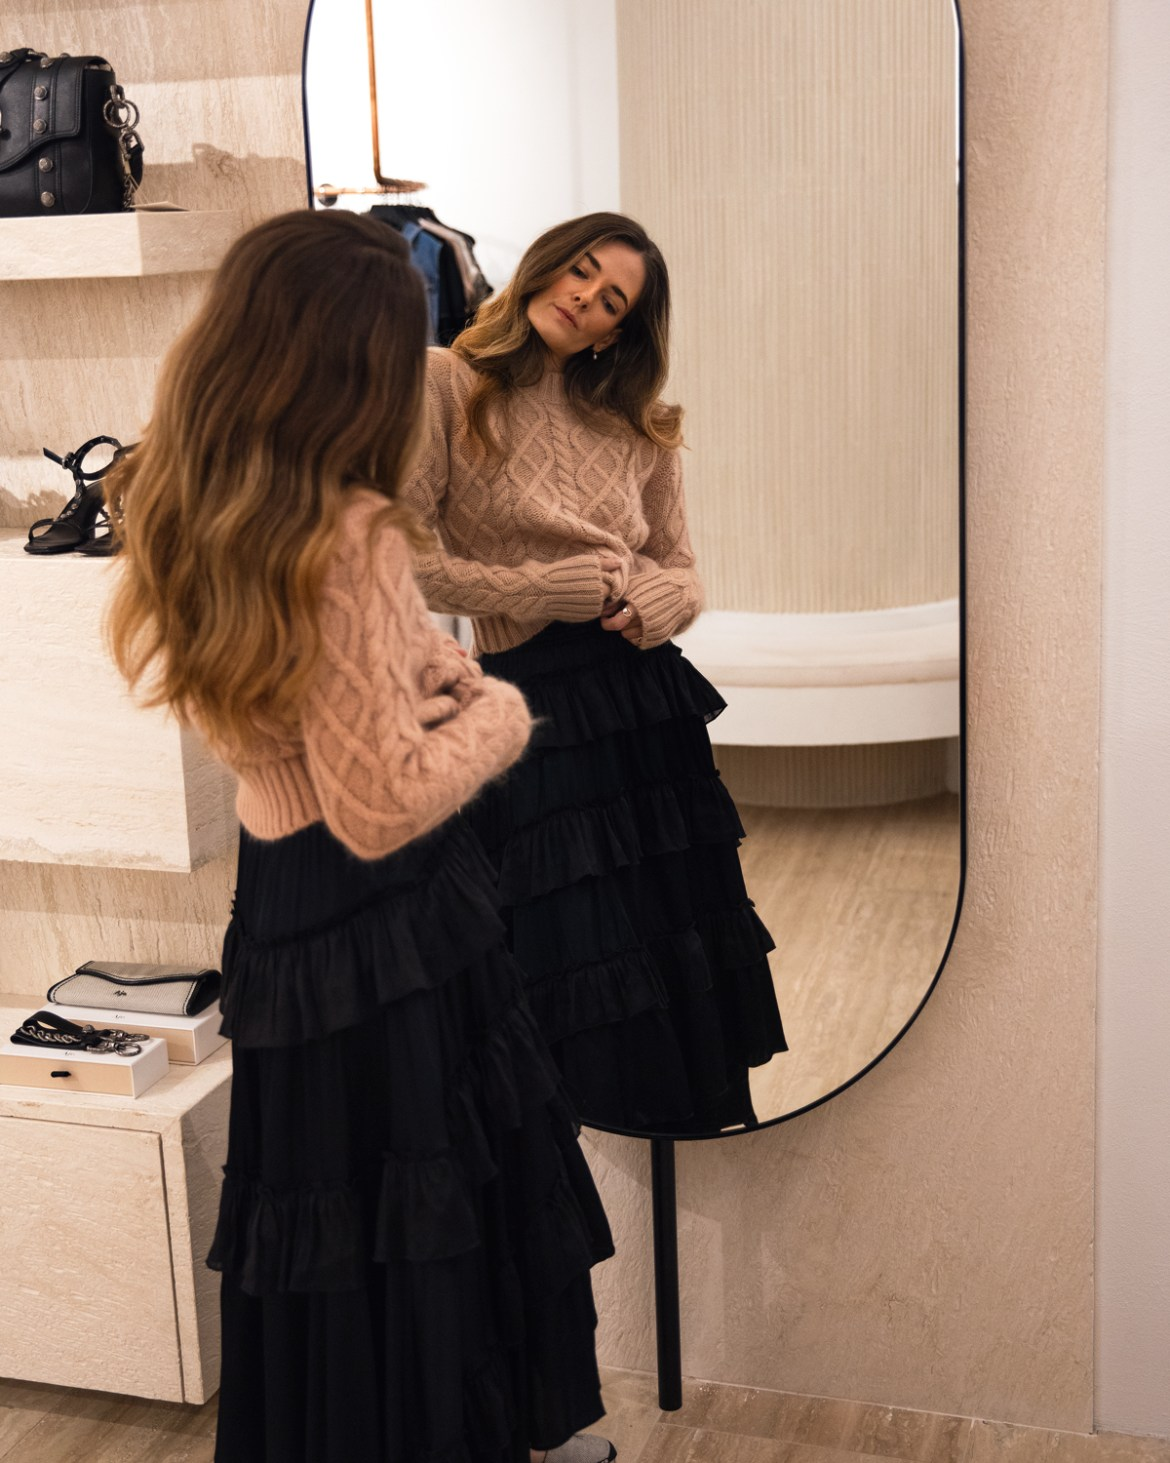 Aje blush cable knit jumper and ruffle skirt with espadrilles from Autumn 19 collection worn by Inspiring Wit fashion blogger Jenelle